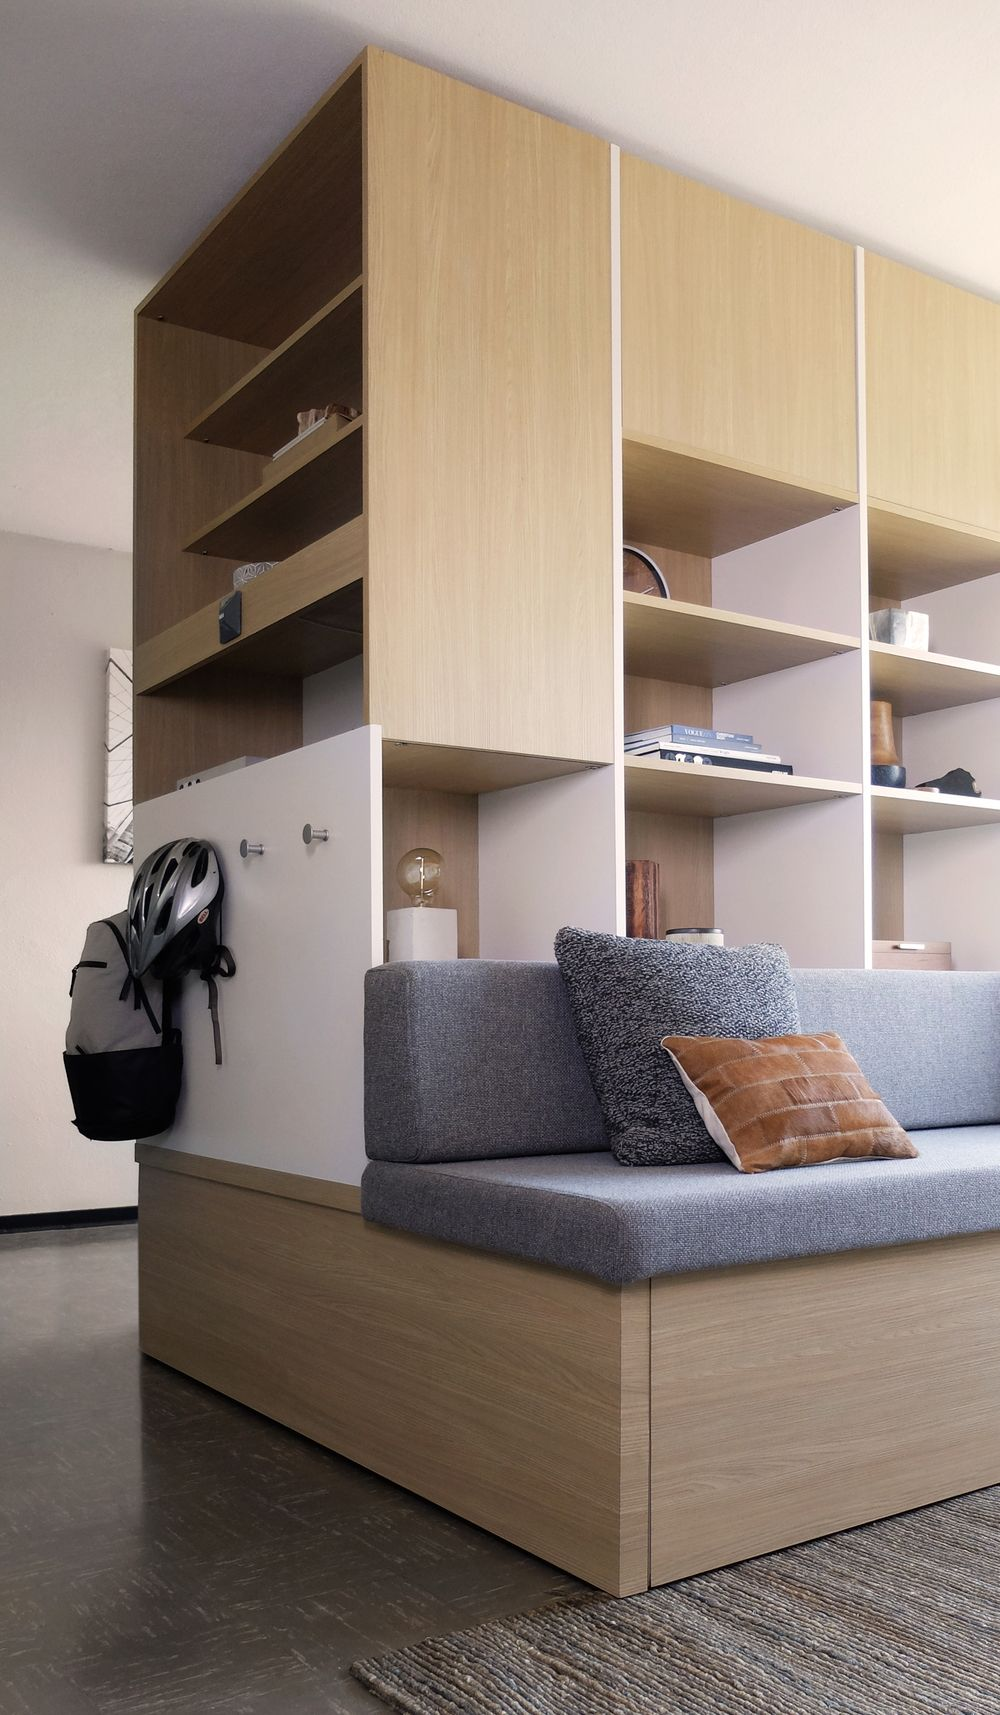 tiny living furniture. ori is a company manufacturing robotic furniture that will completely change the way you live in small apartment tiny living